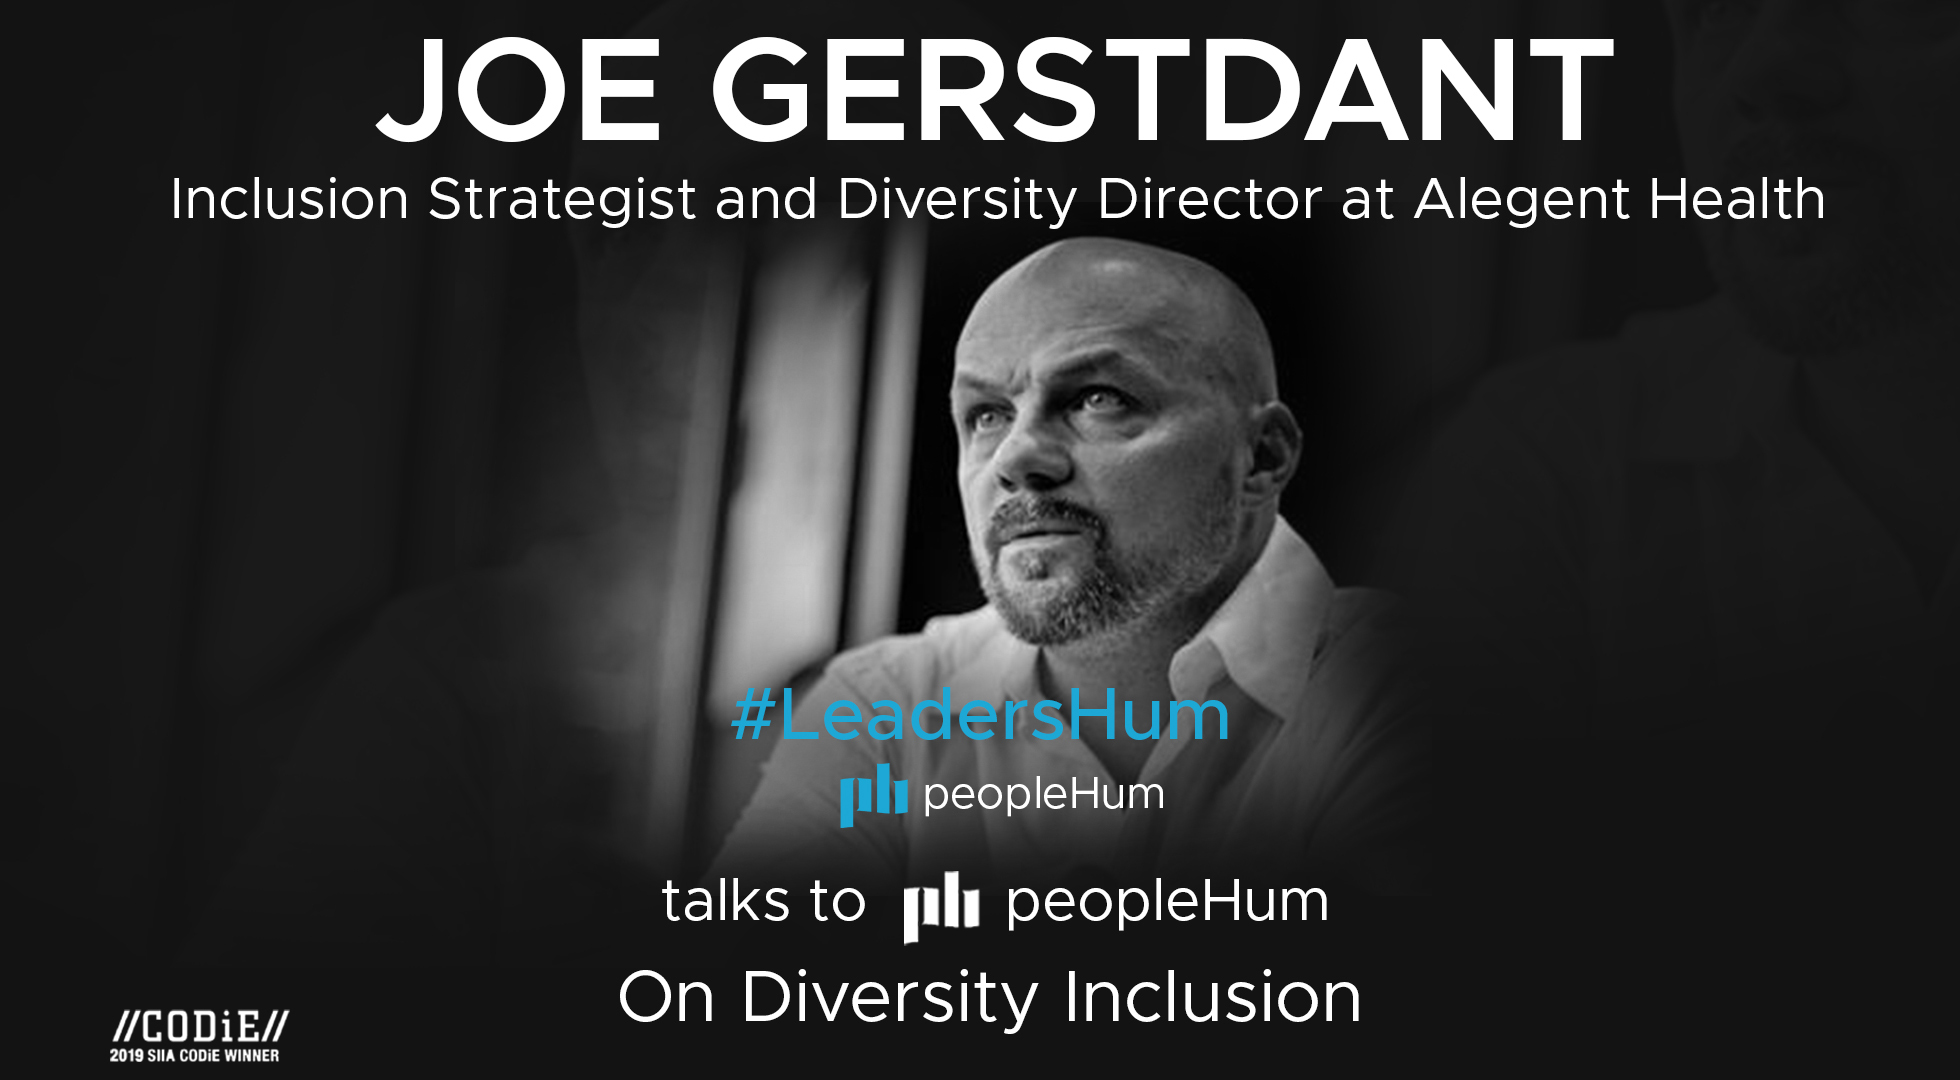 Inclusion of diversity in the workplace - Joe Gerstandt [Interview]